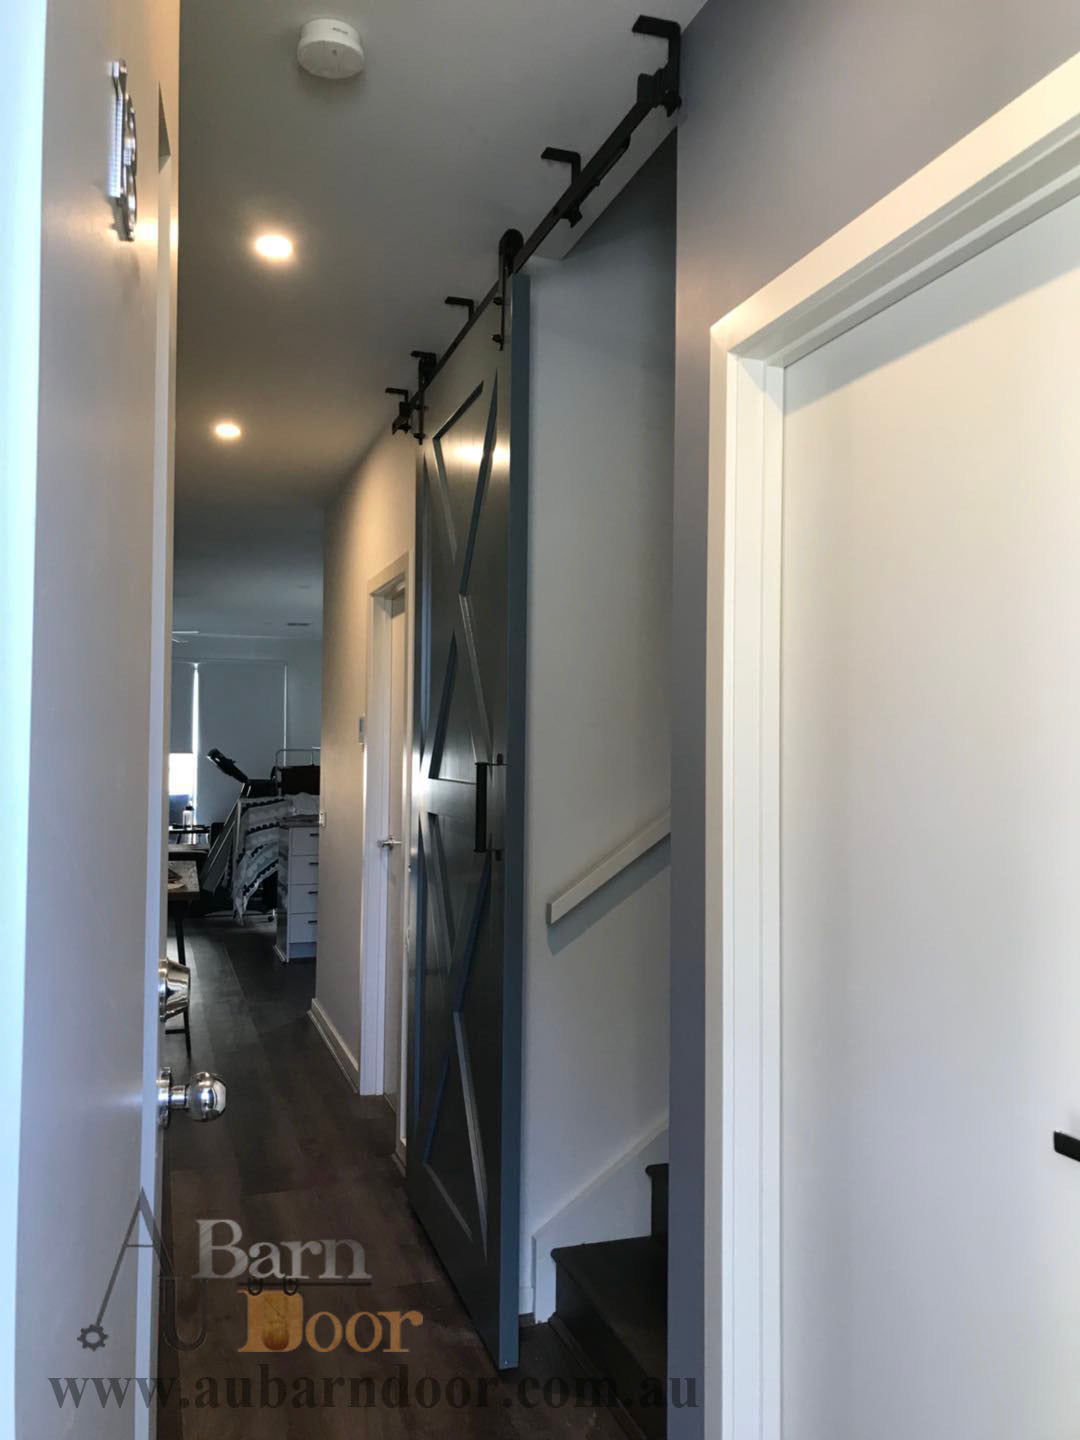 Ceiling Support | Australia Barn Door Expert